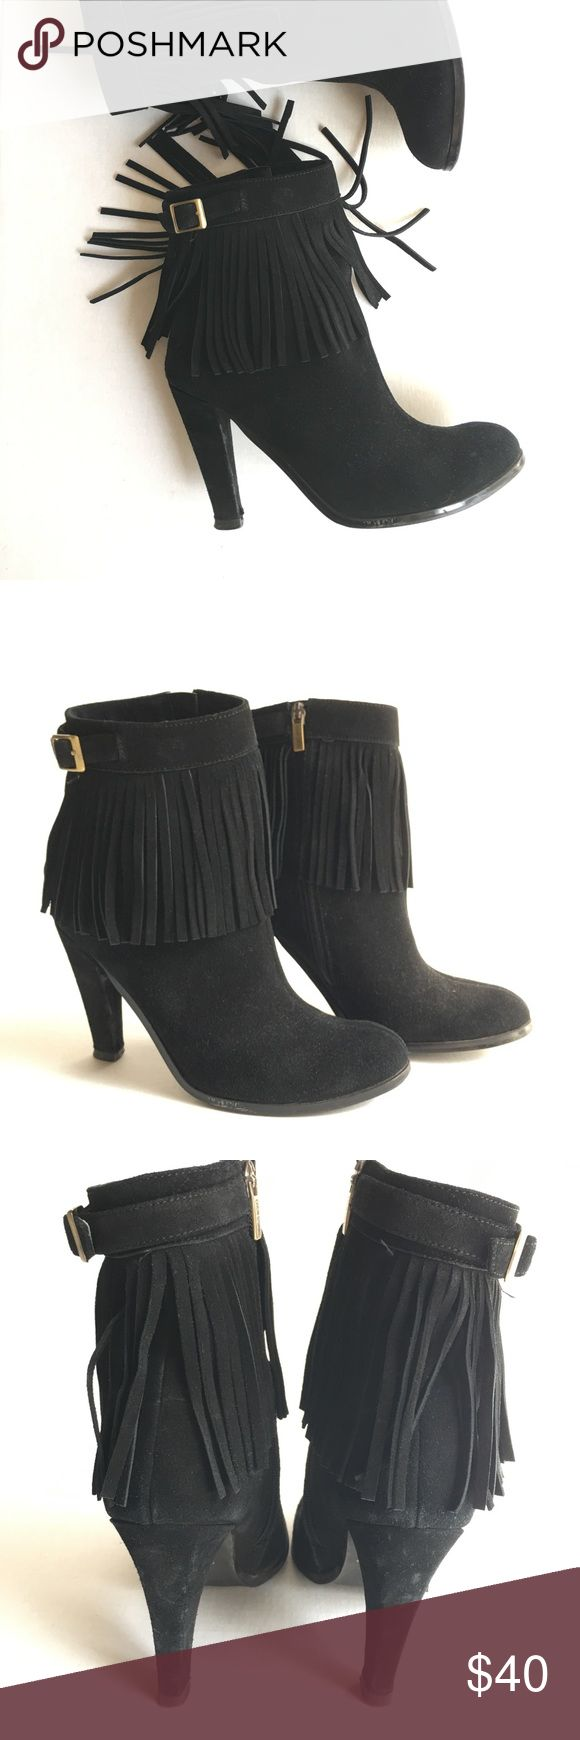 "Colin Stuart Black Suede Fringe Ankle Boots 3"" heel. Brass buckle detail at ankle. Inside zipper. Box kept for years. Worn a handful of times. Excellent condition. Colin Stuart Shoes Ankle Boots & Booties"